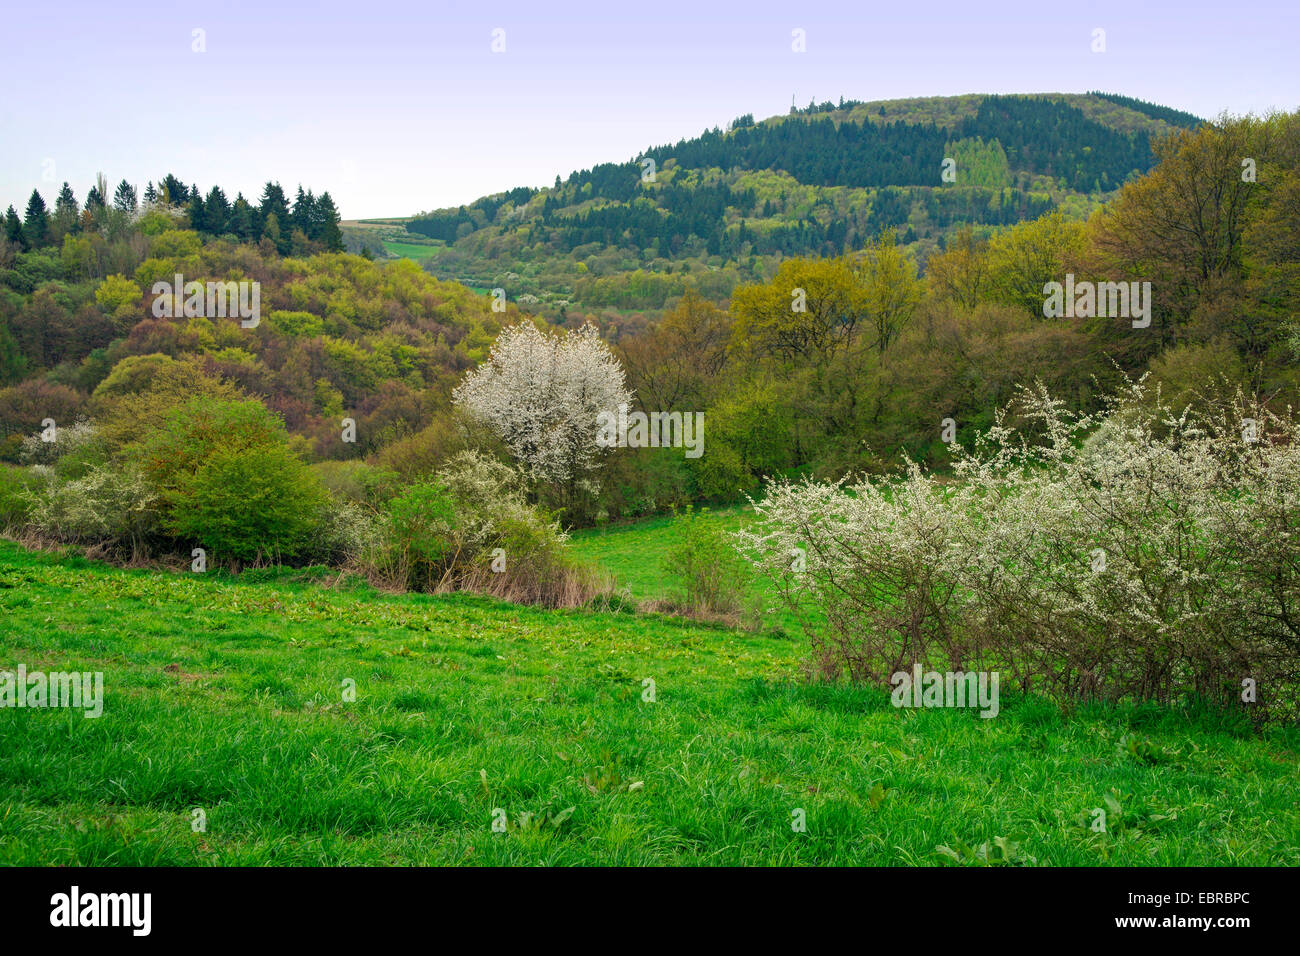 blackthorn, sloe (Prunus spinosa), landscape with blooming blackthorns and cherry trees , Germany, Rhineland-Palatinate, - Stock Image